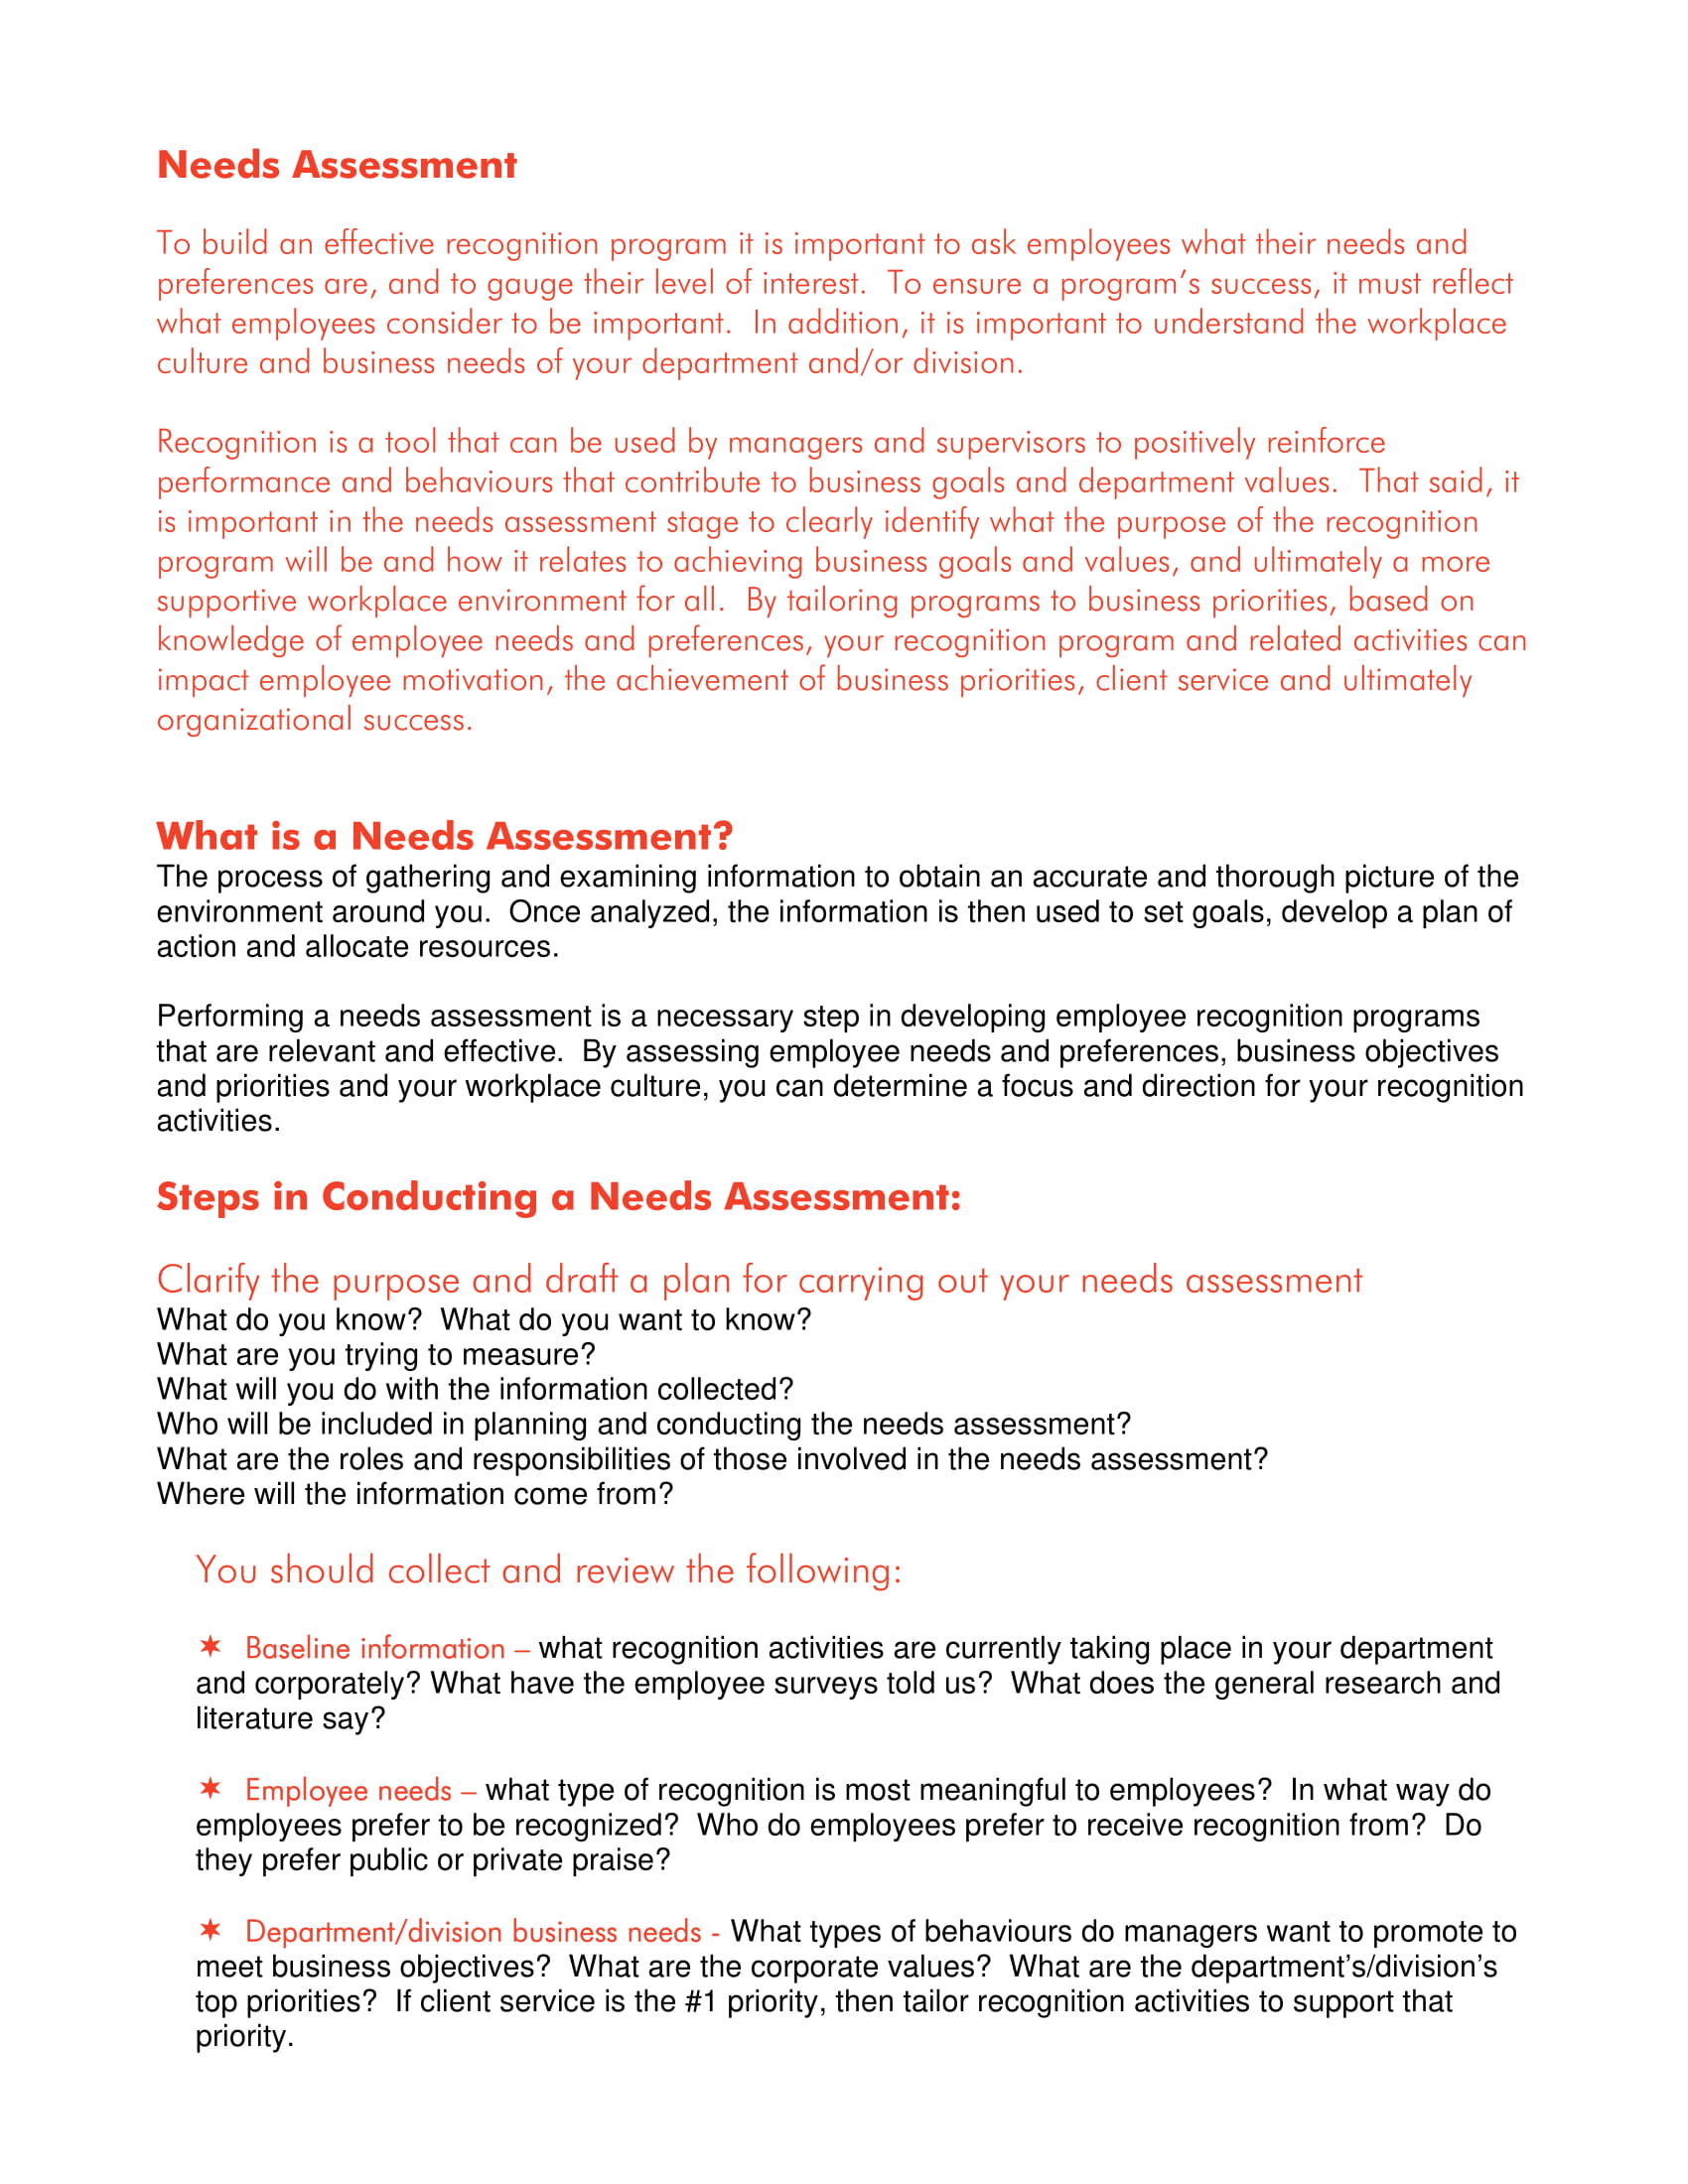 needs assessment conduct guidelines example 1